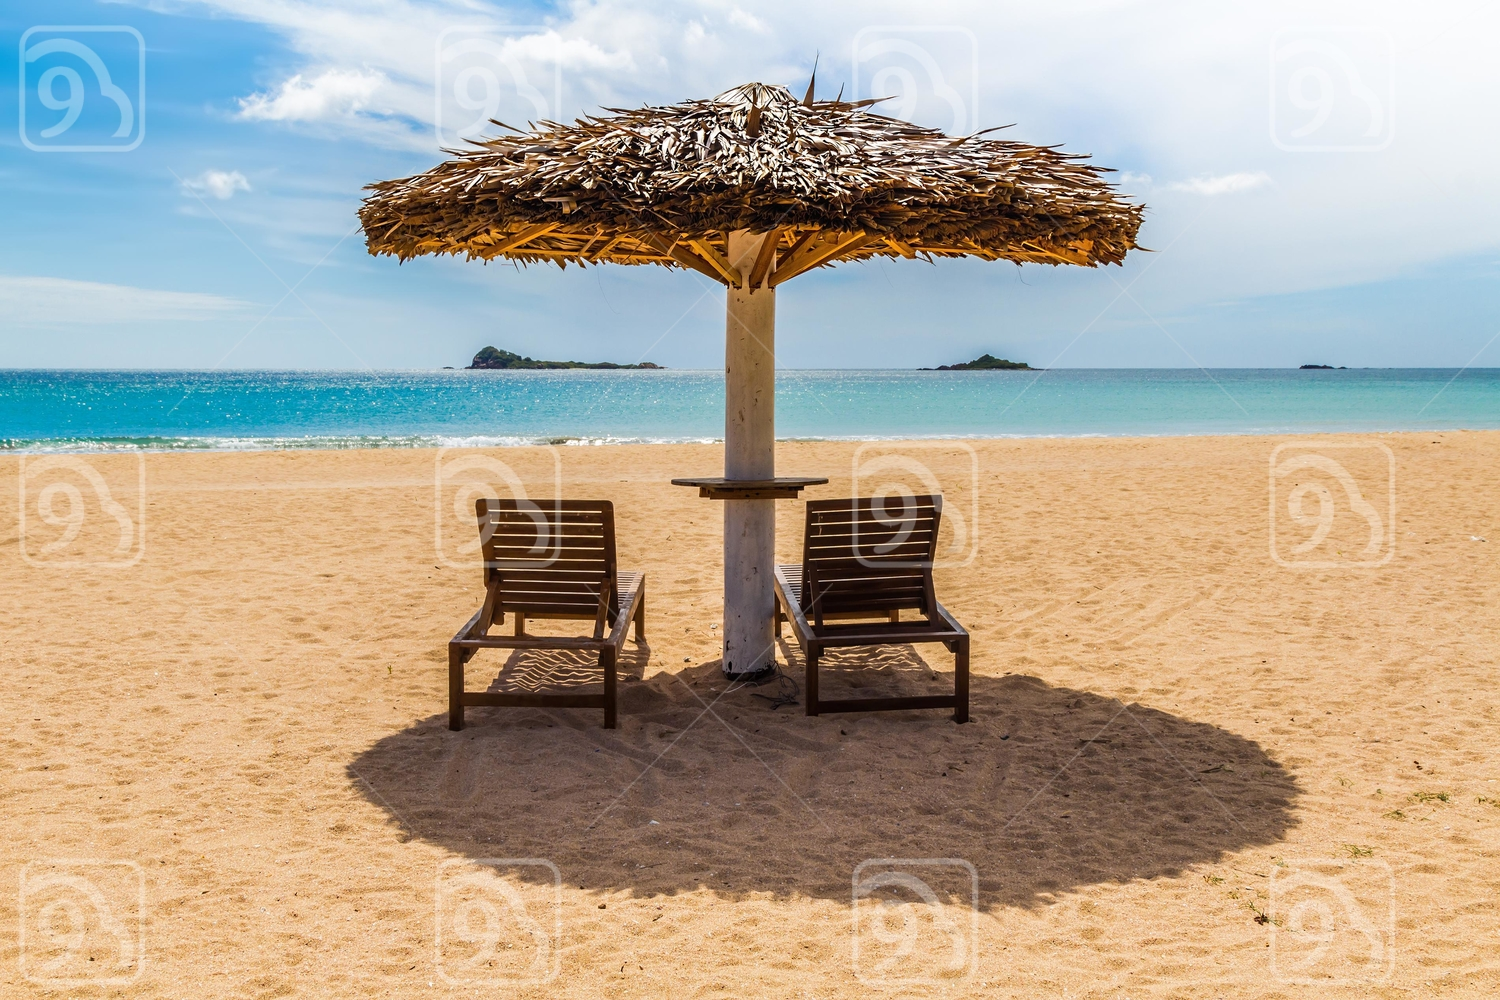 Two deck chairs on a deserted tropical beach in Sri Lanka